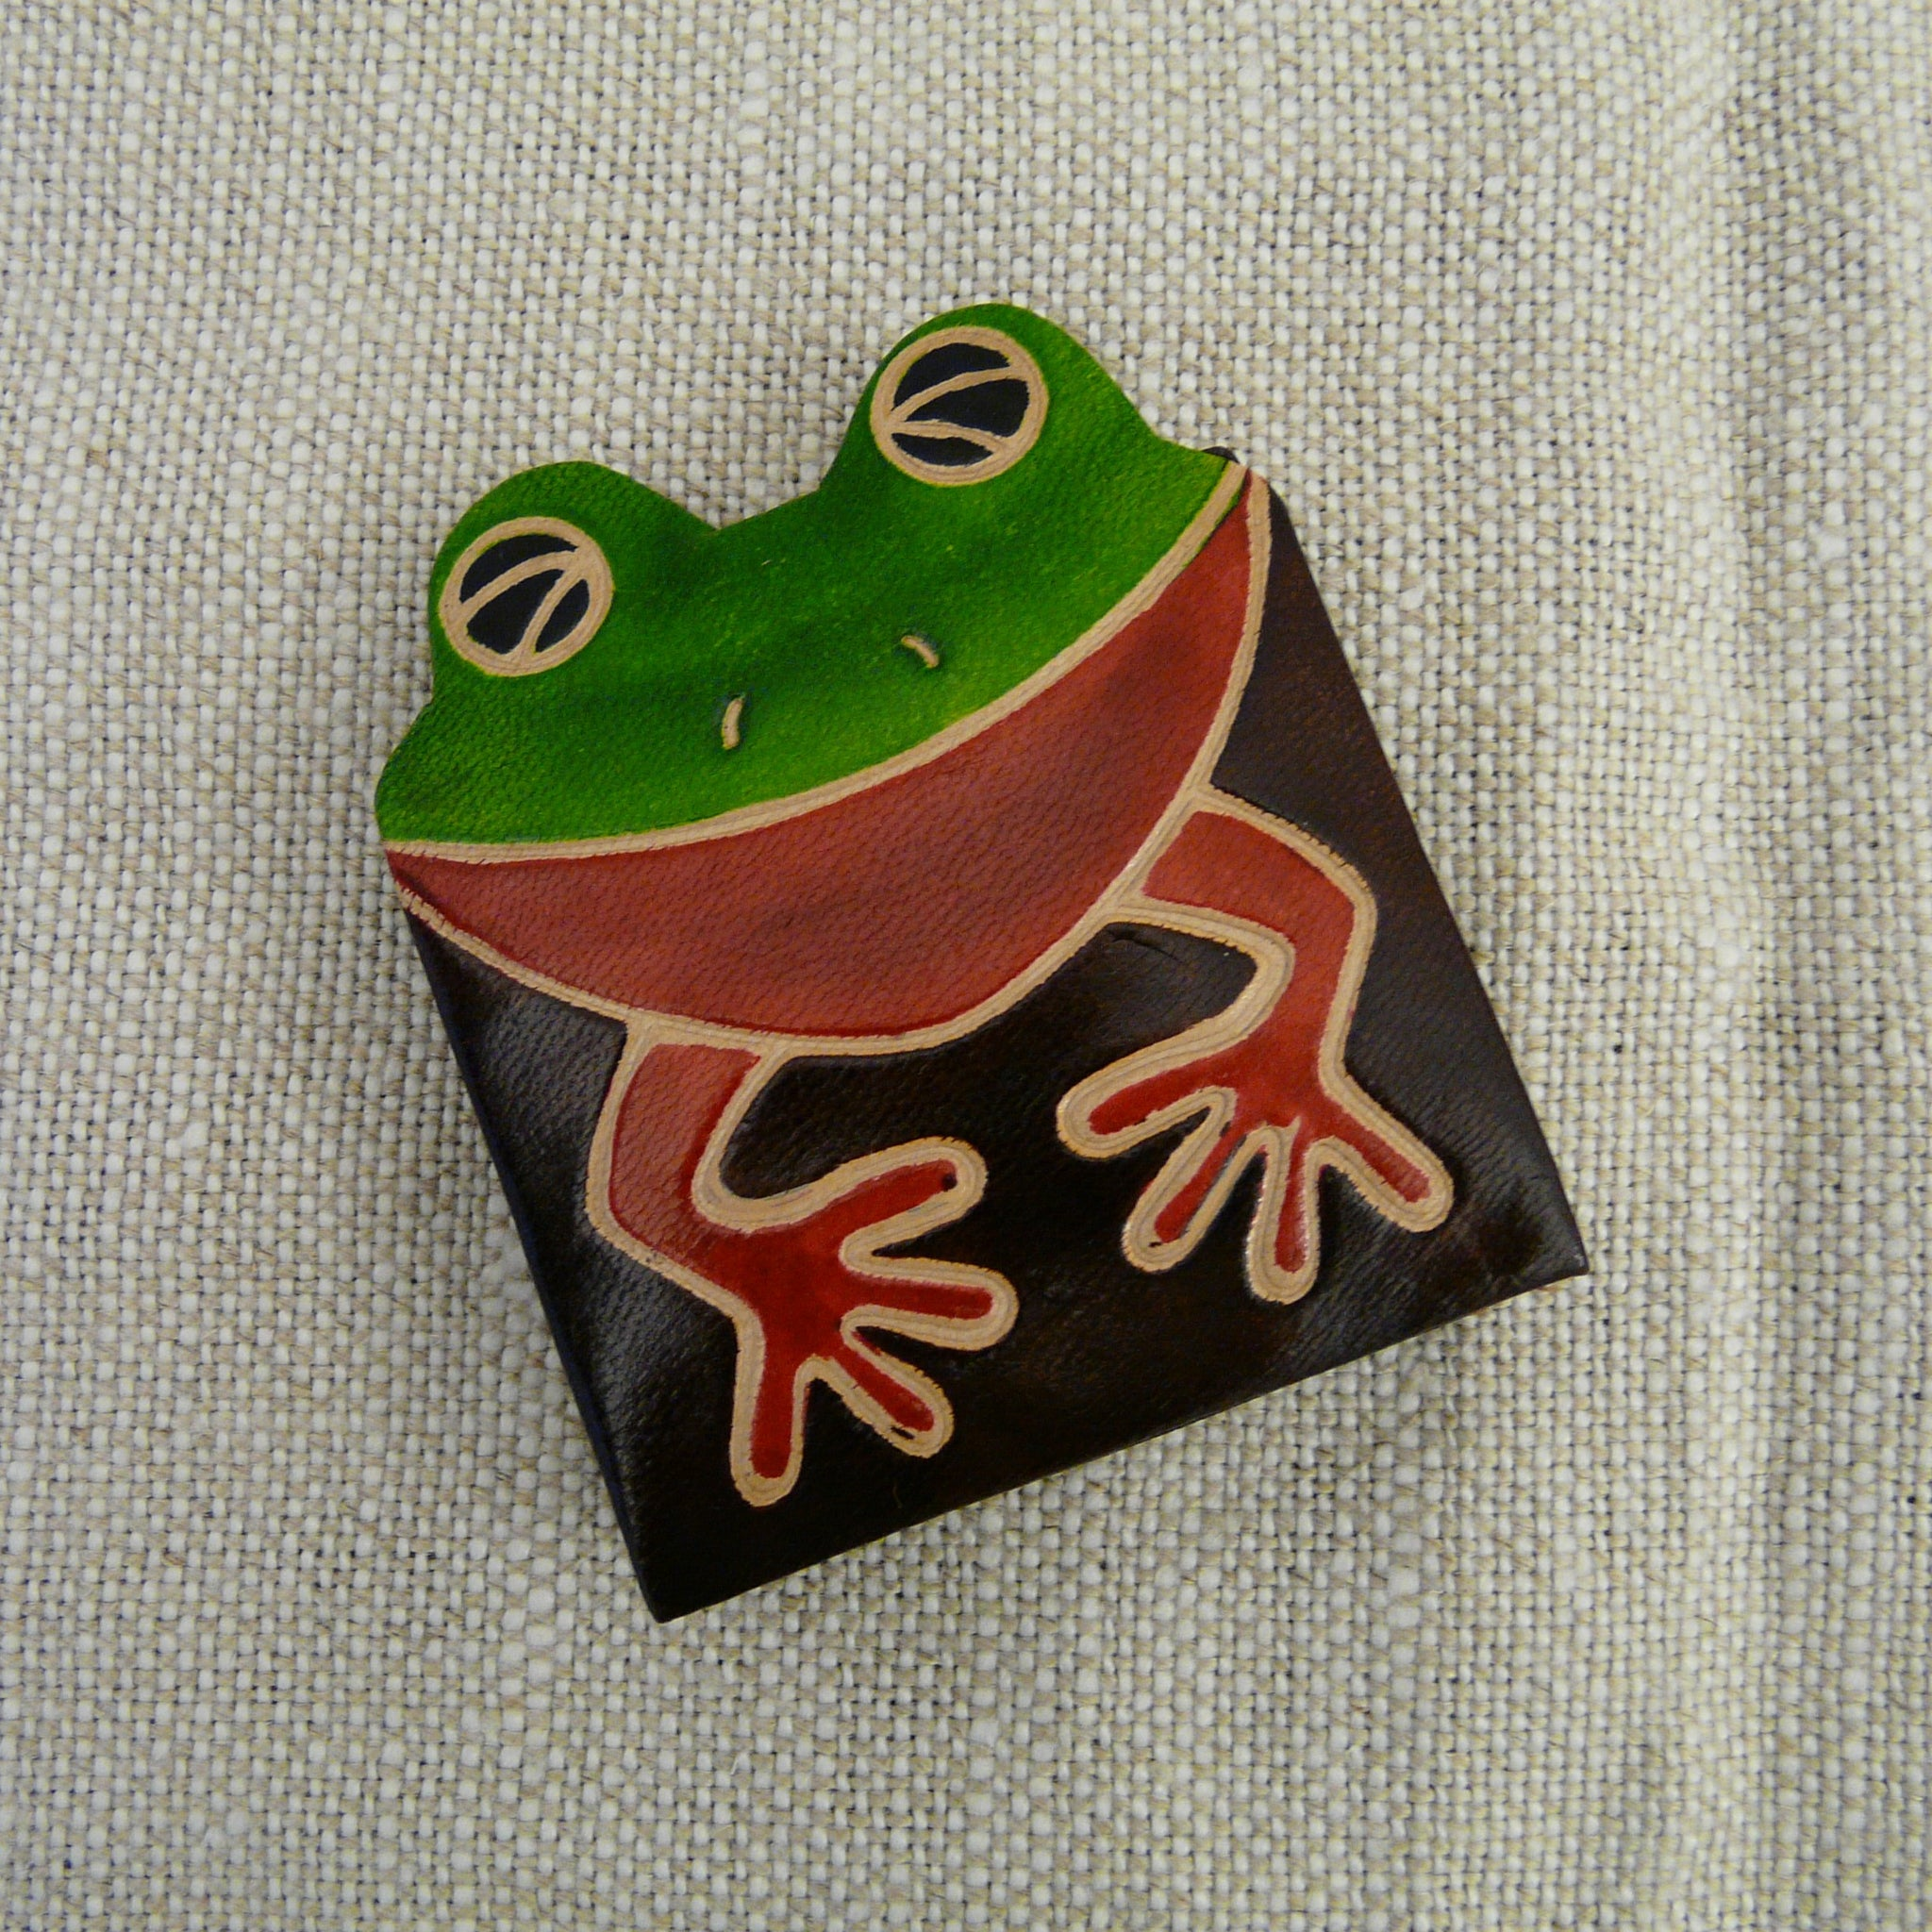 fair-trade-handcrafted-small-square-leather-coin-purse-frog-green-red